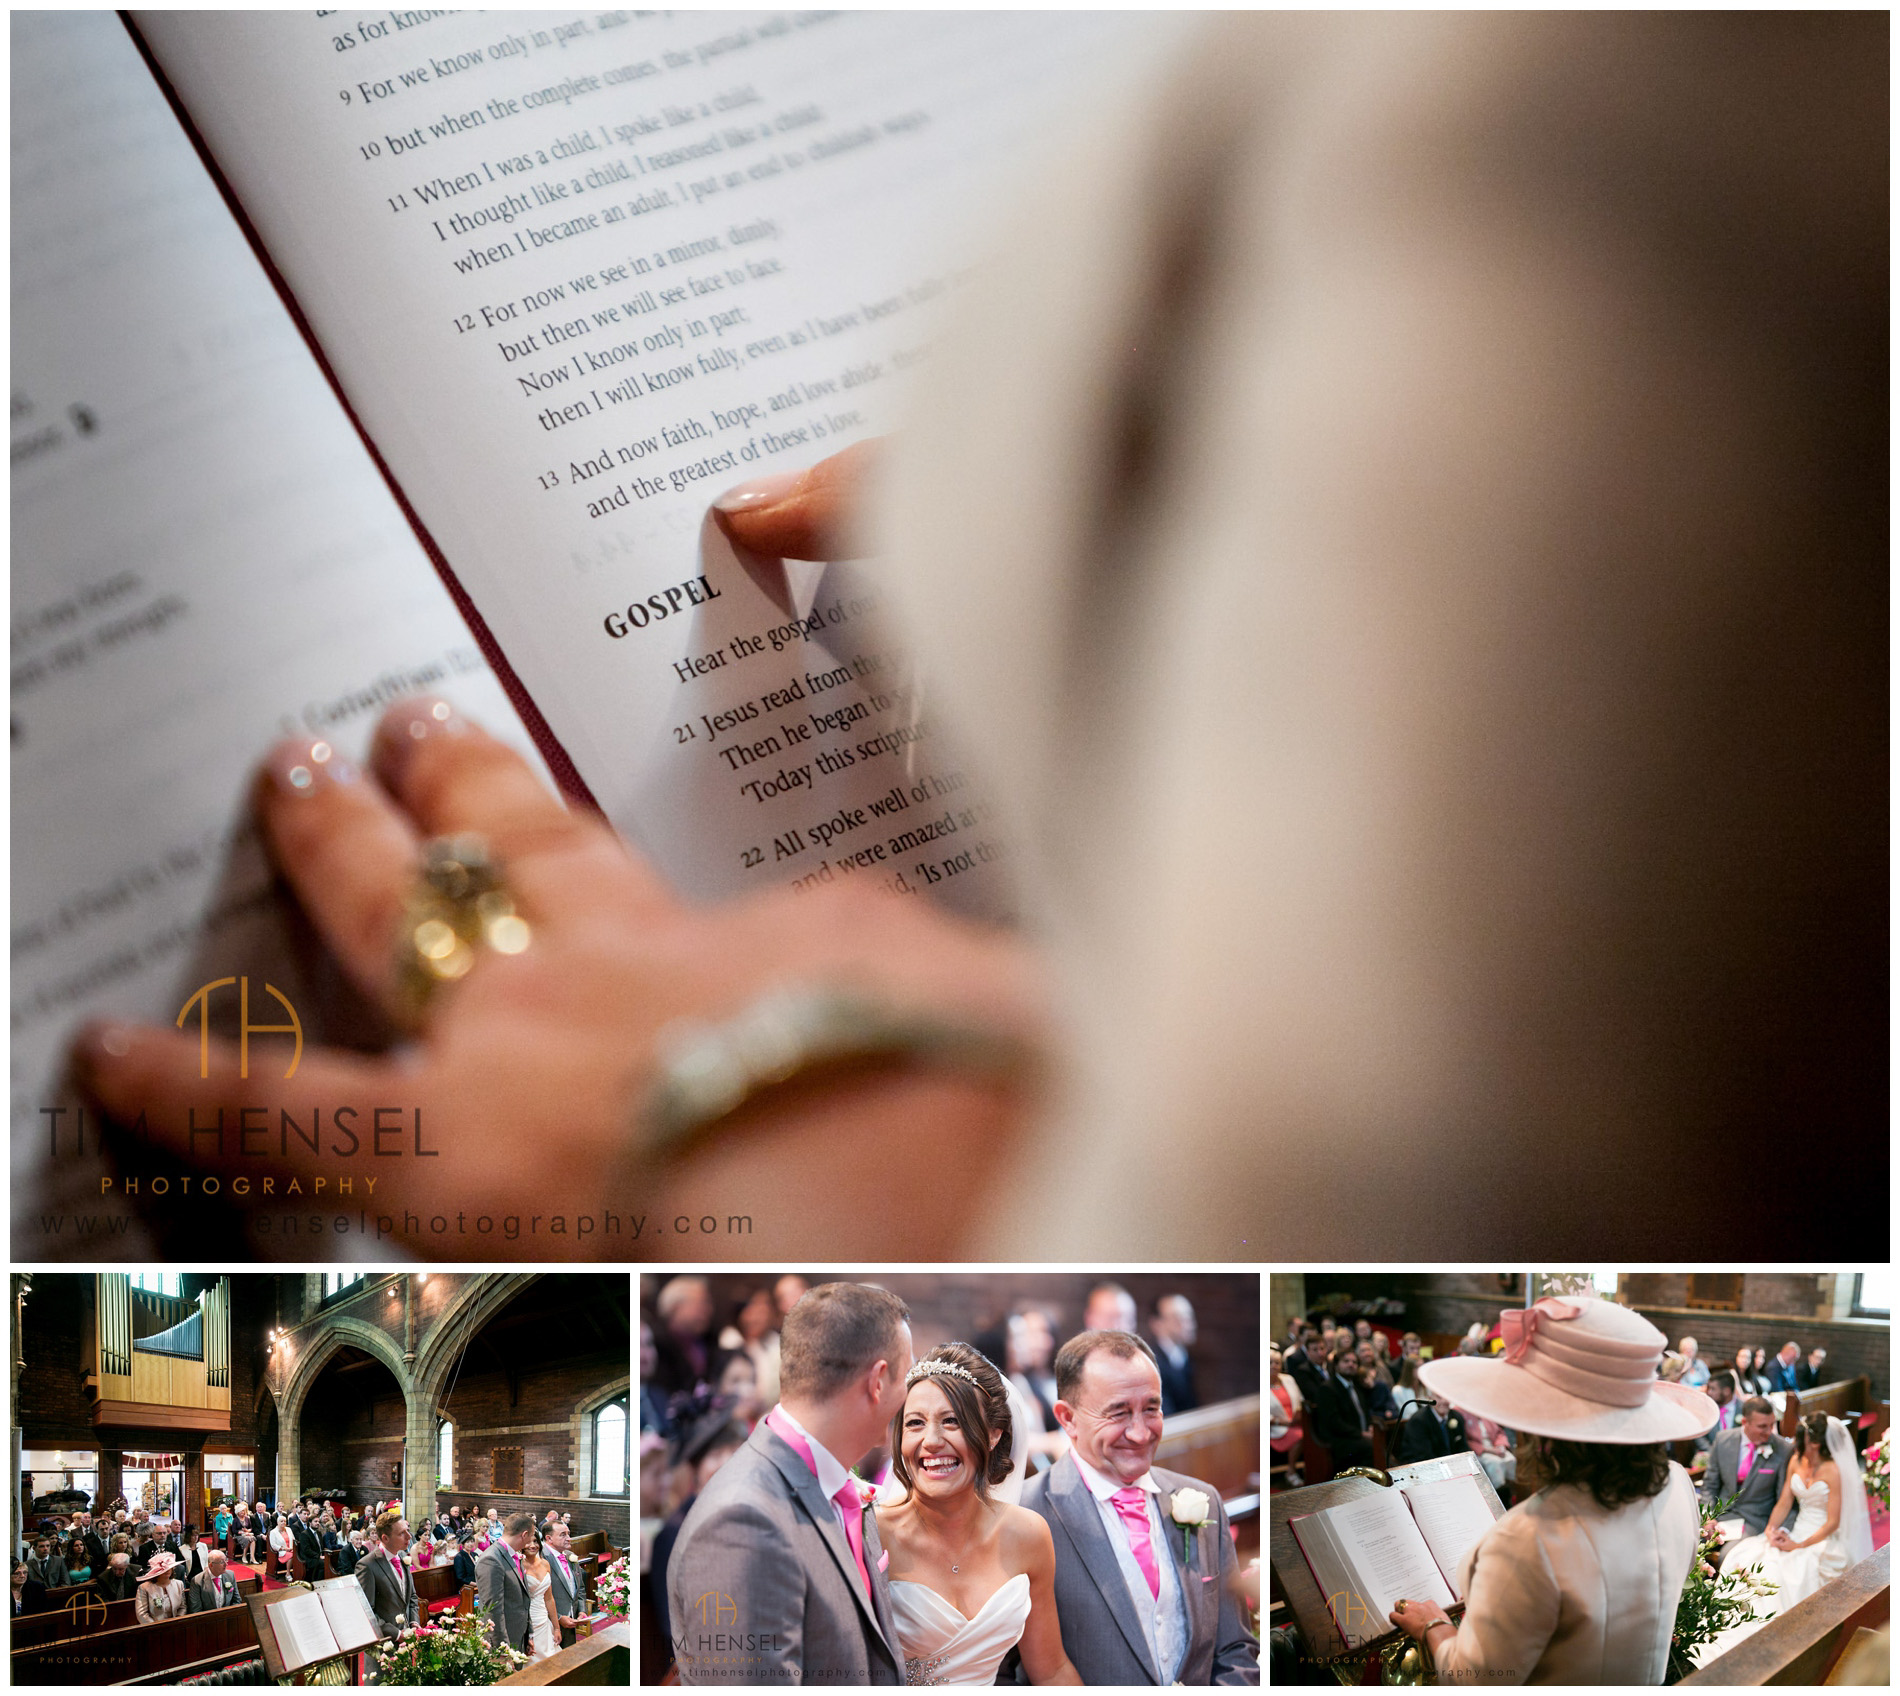 I photograph the moments and the emotions at a wedding